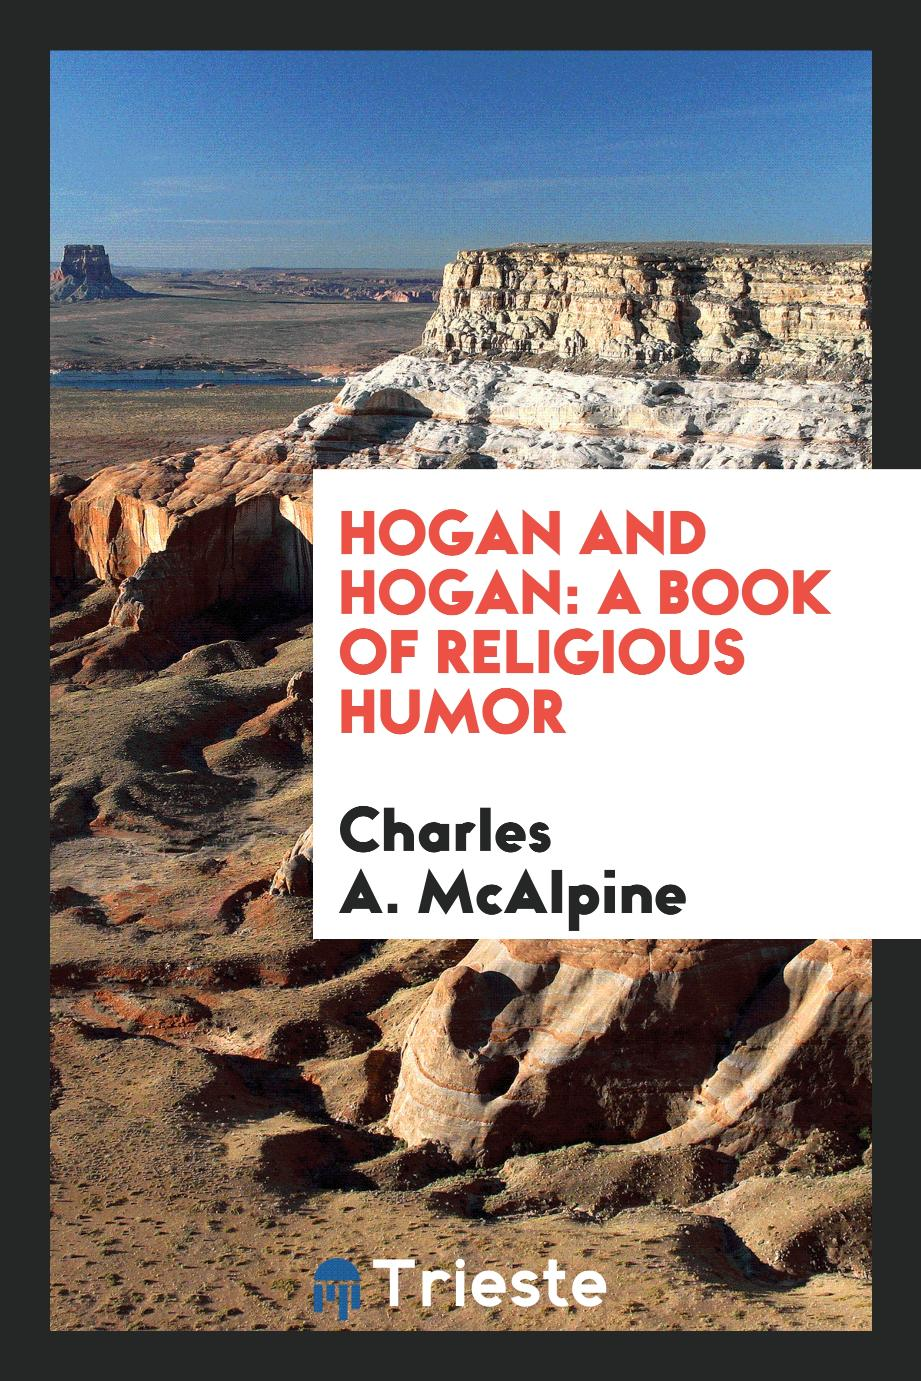 Hogan and Hogan: A Book of Religious Humor